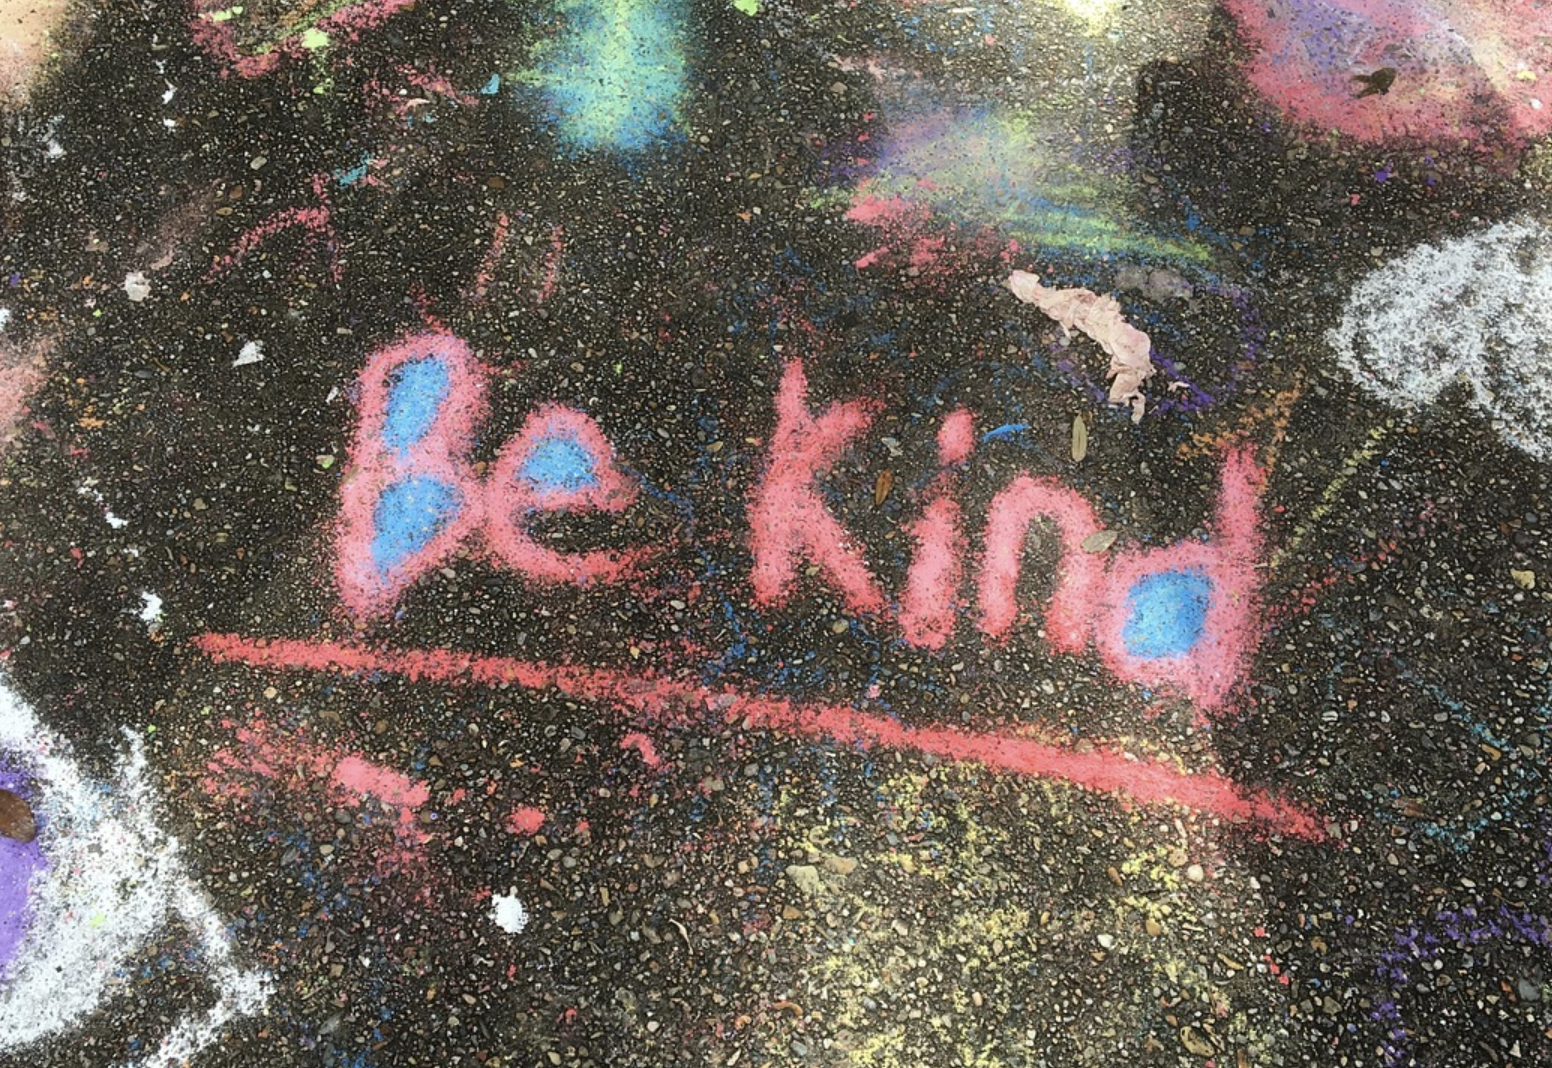 Blog: Kindness